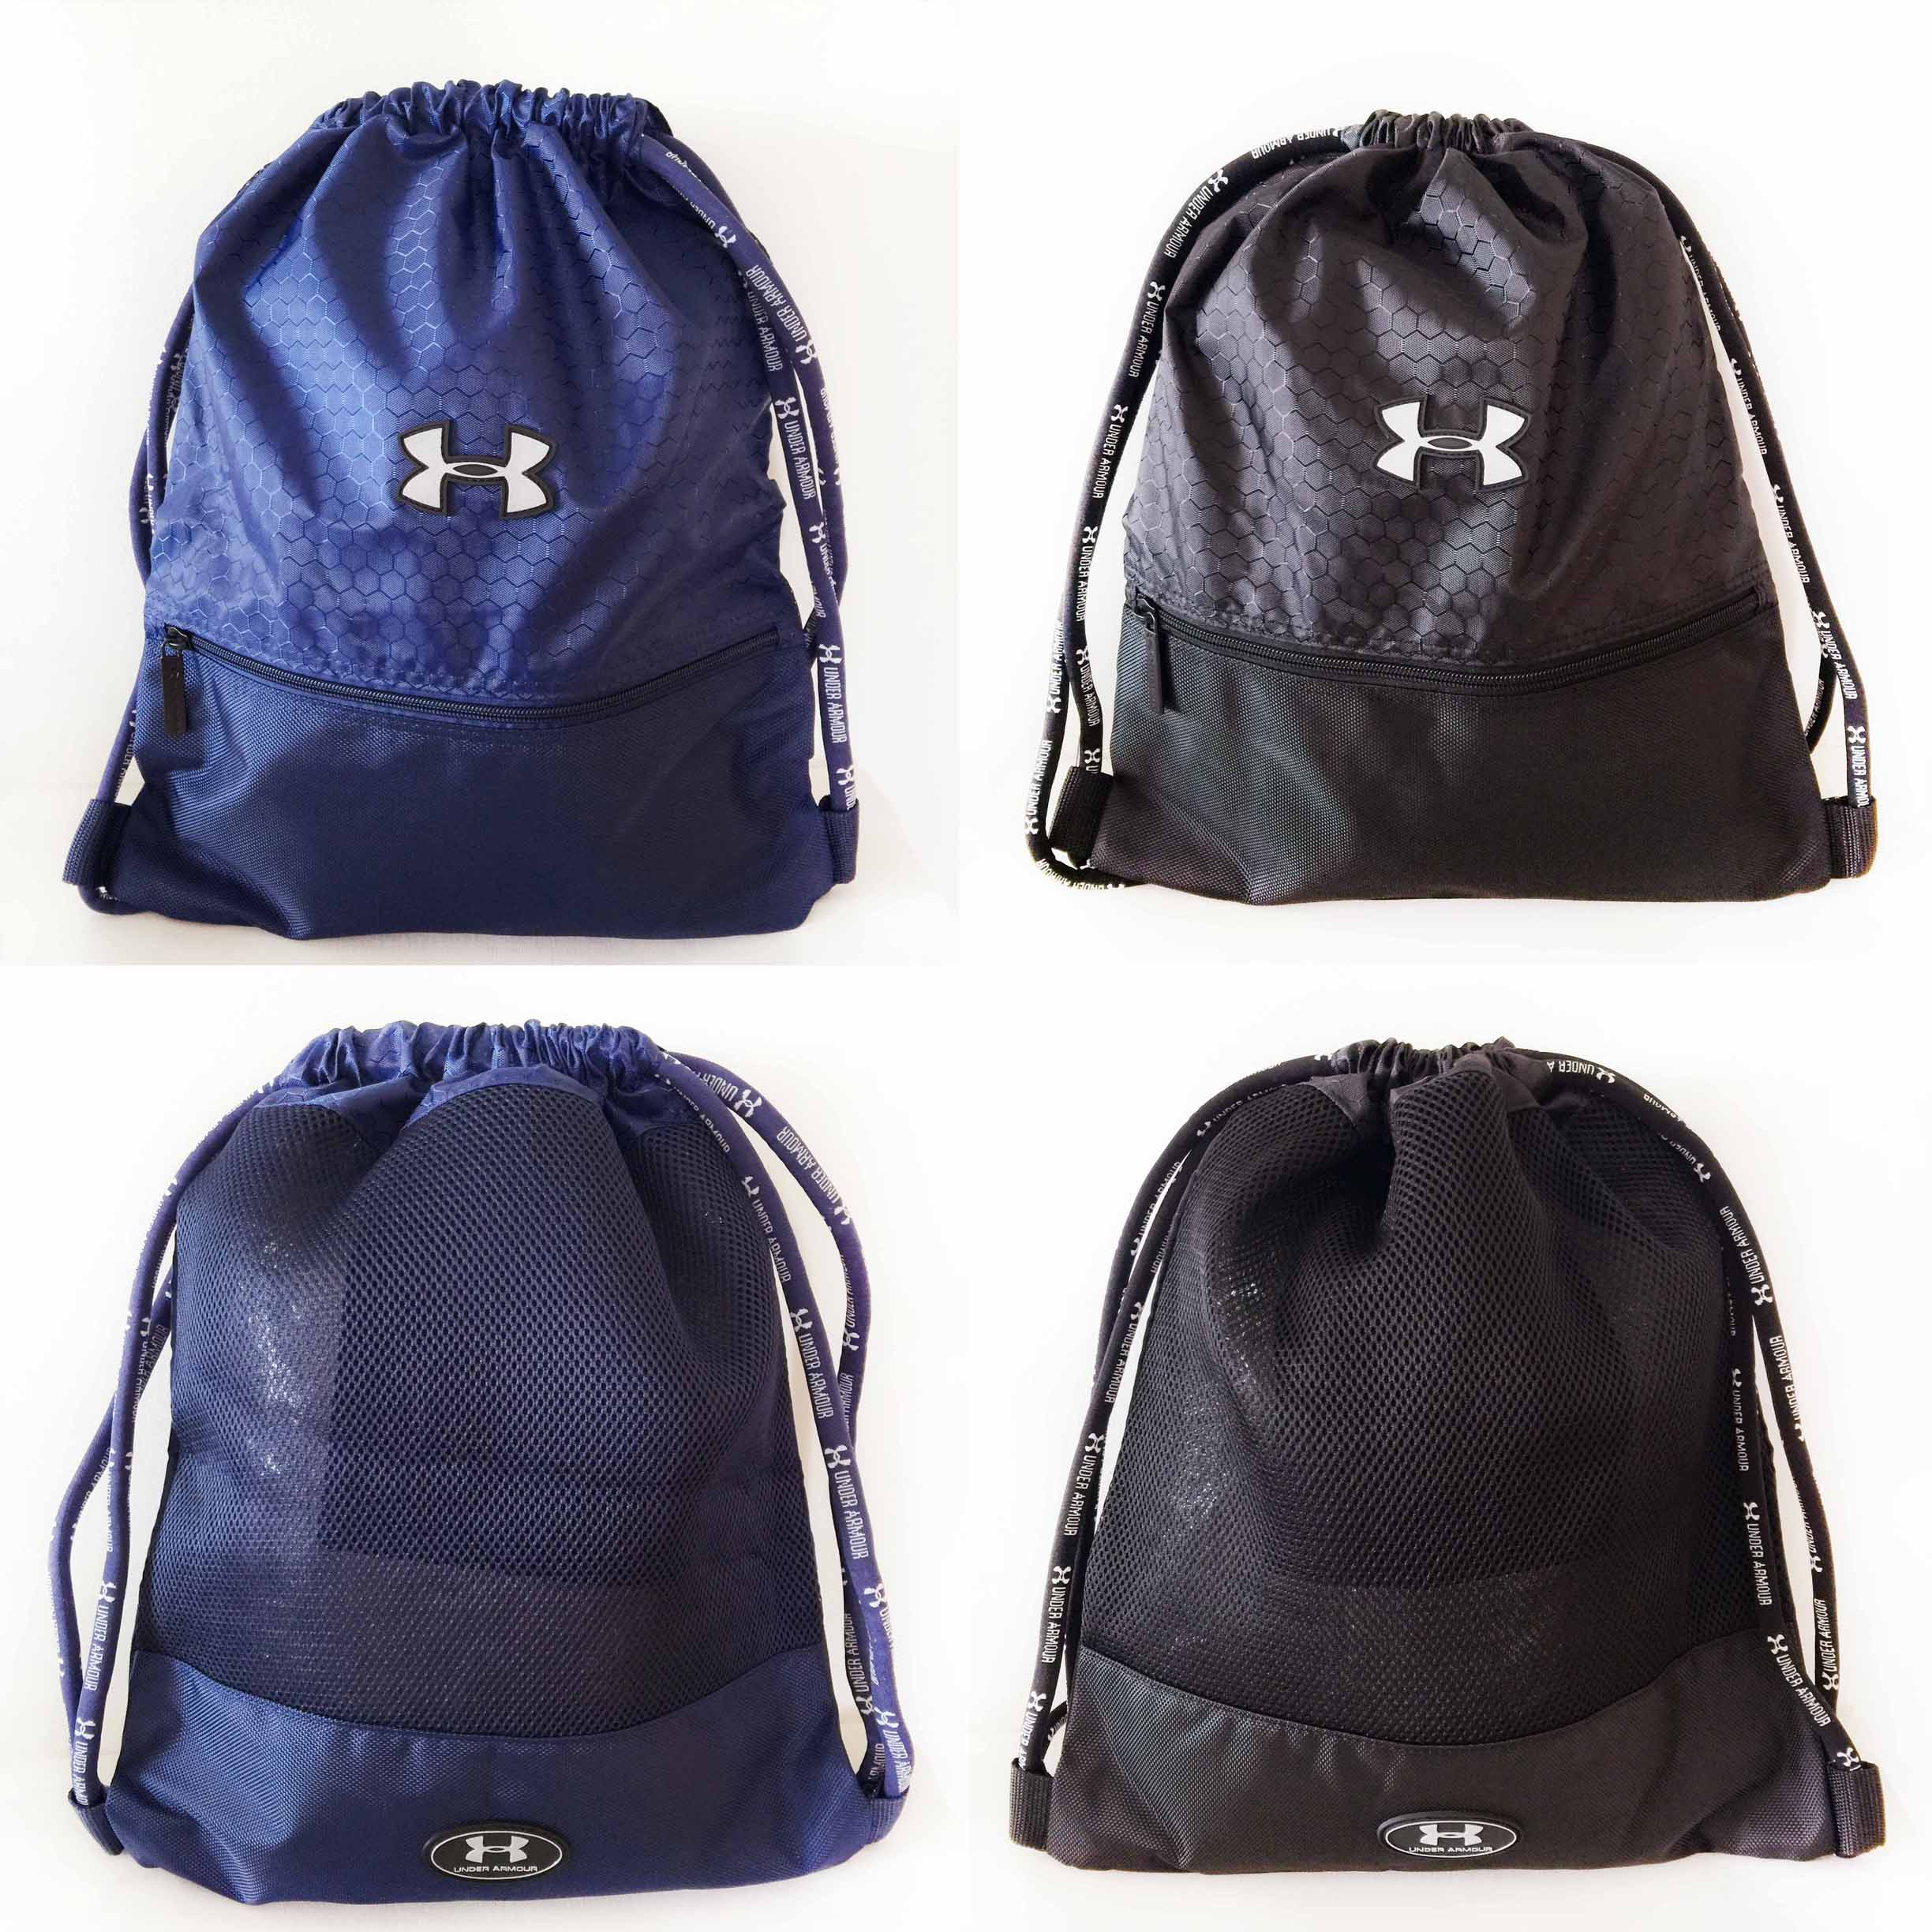 d9d93d8aad4b Buy UNDER ARMOUR Waterproof Drawstring Bag Backpack Sports Bag Shoe ...